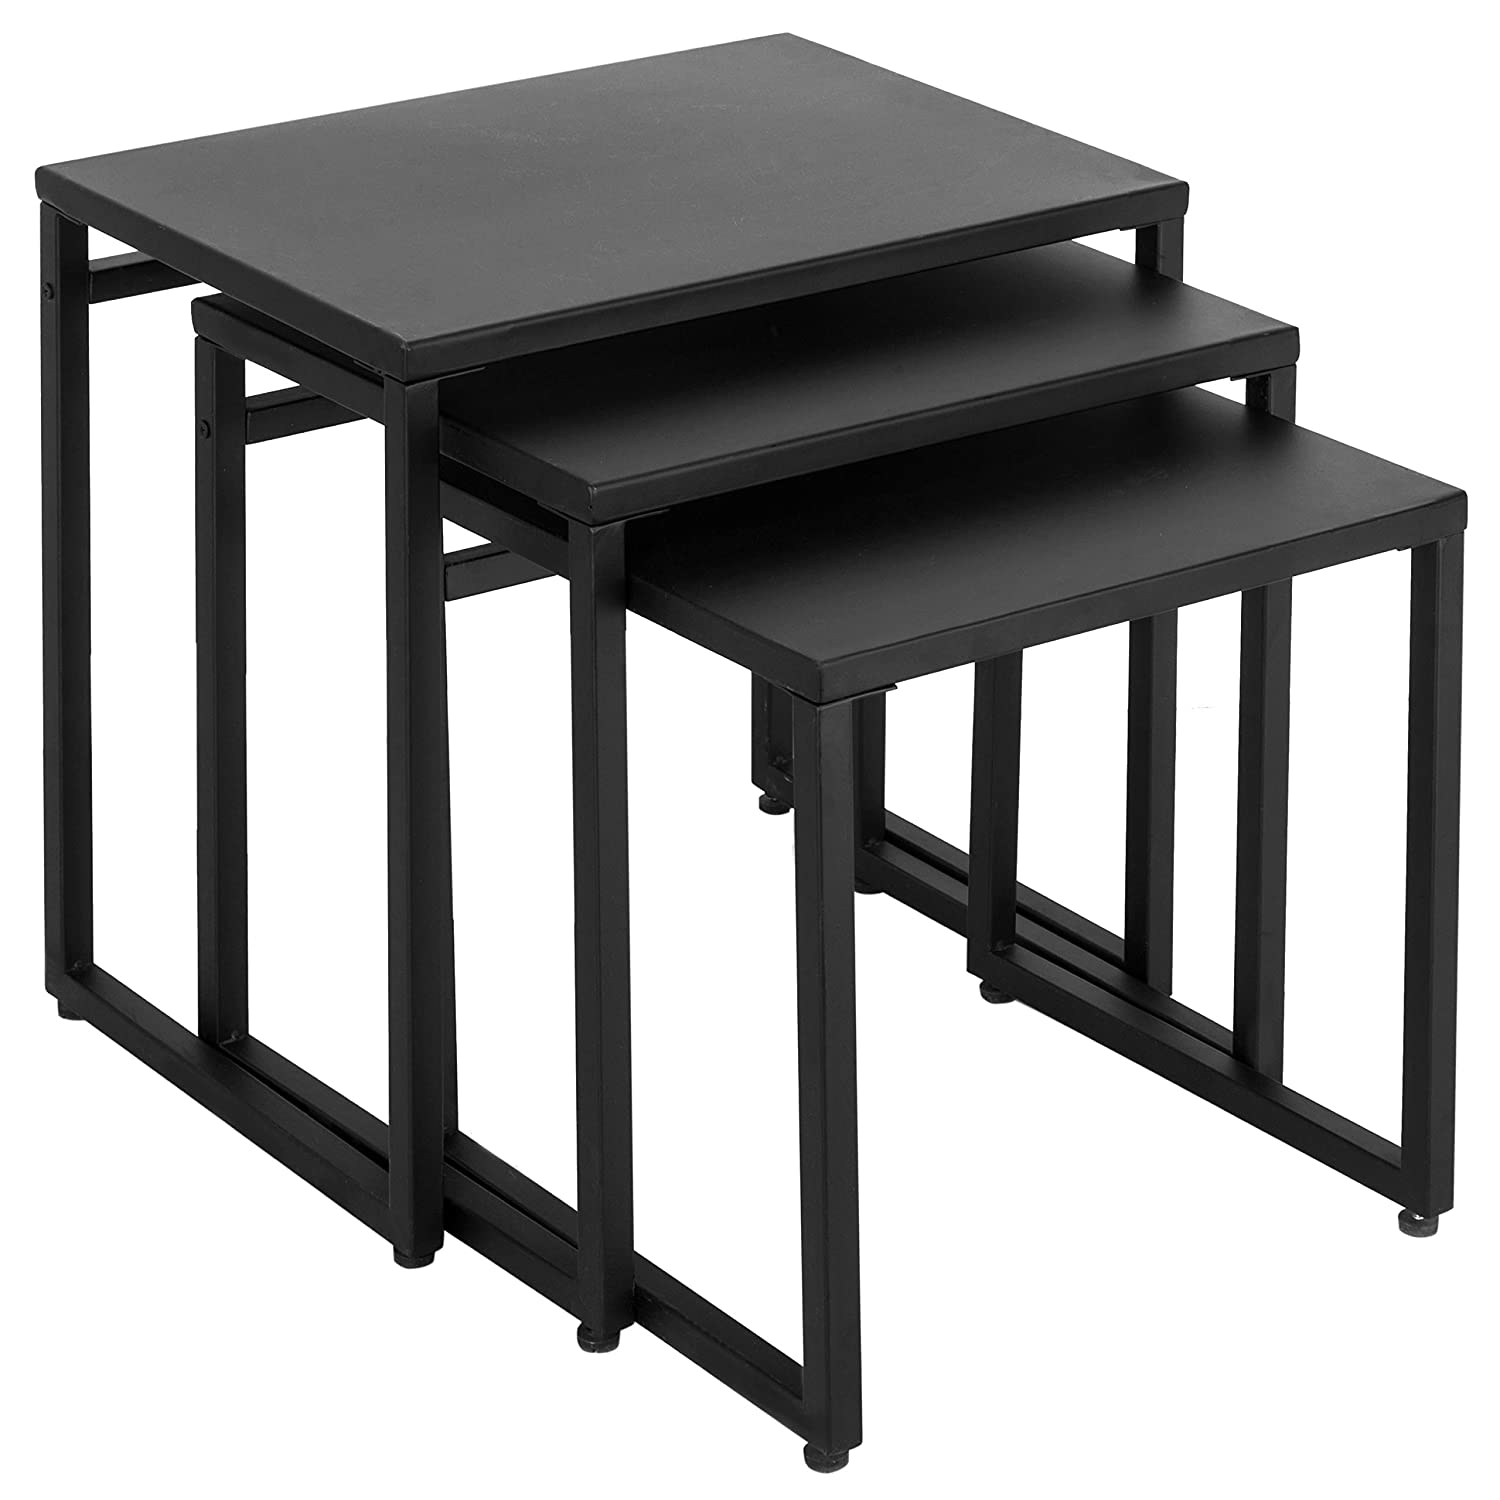 MyGift Set of 3 Black Metal Nesting End Tables